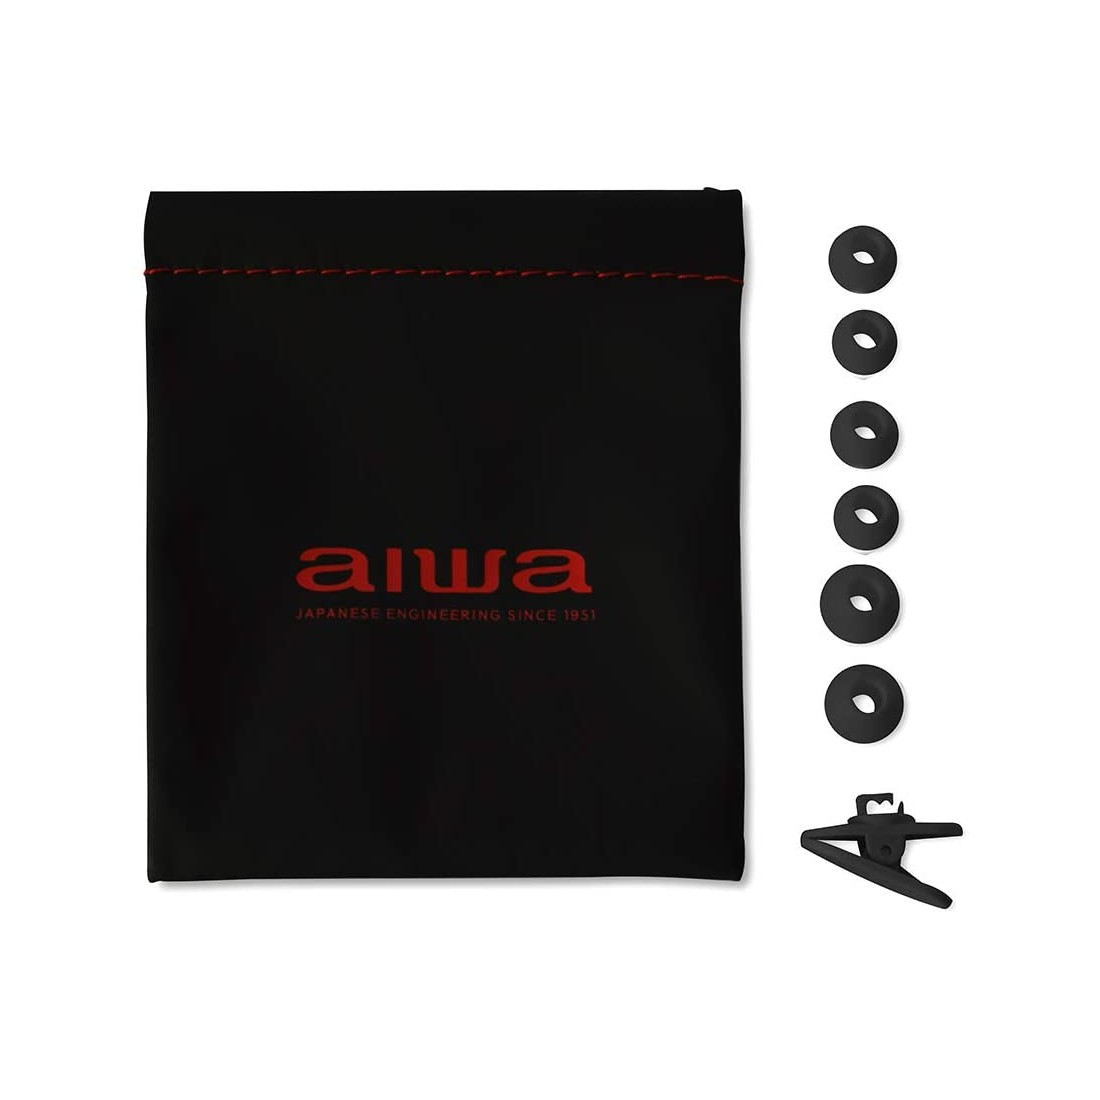 Aiwa ESTM-500BK, Auriculares In-Ear, Jack 3.5 mm, 3x11x24, color Negro